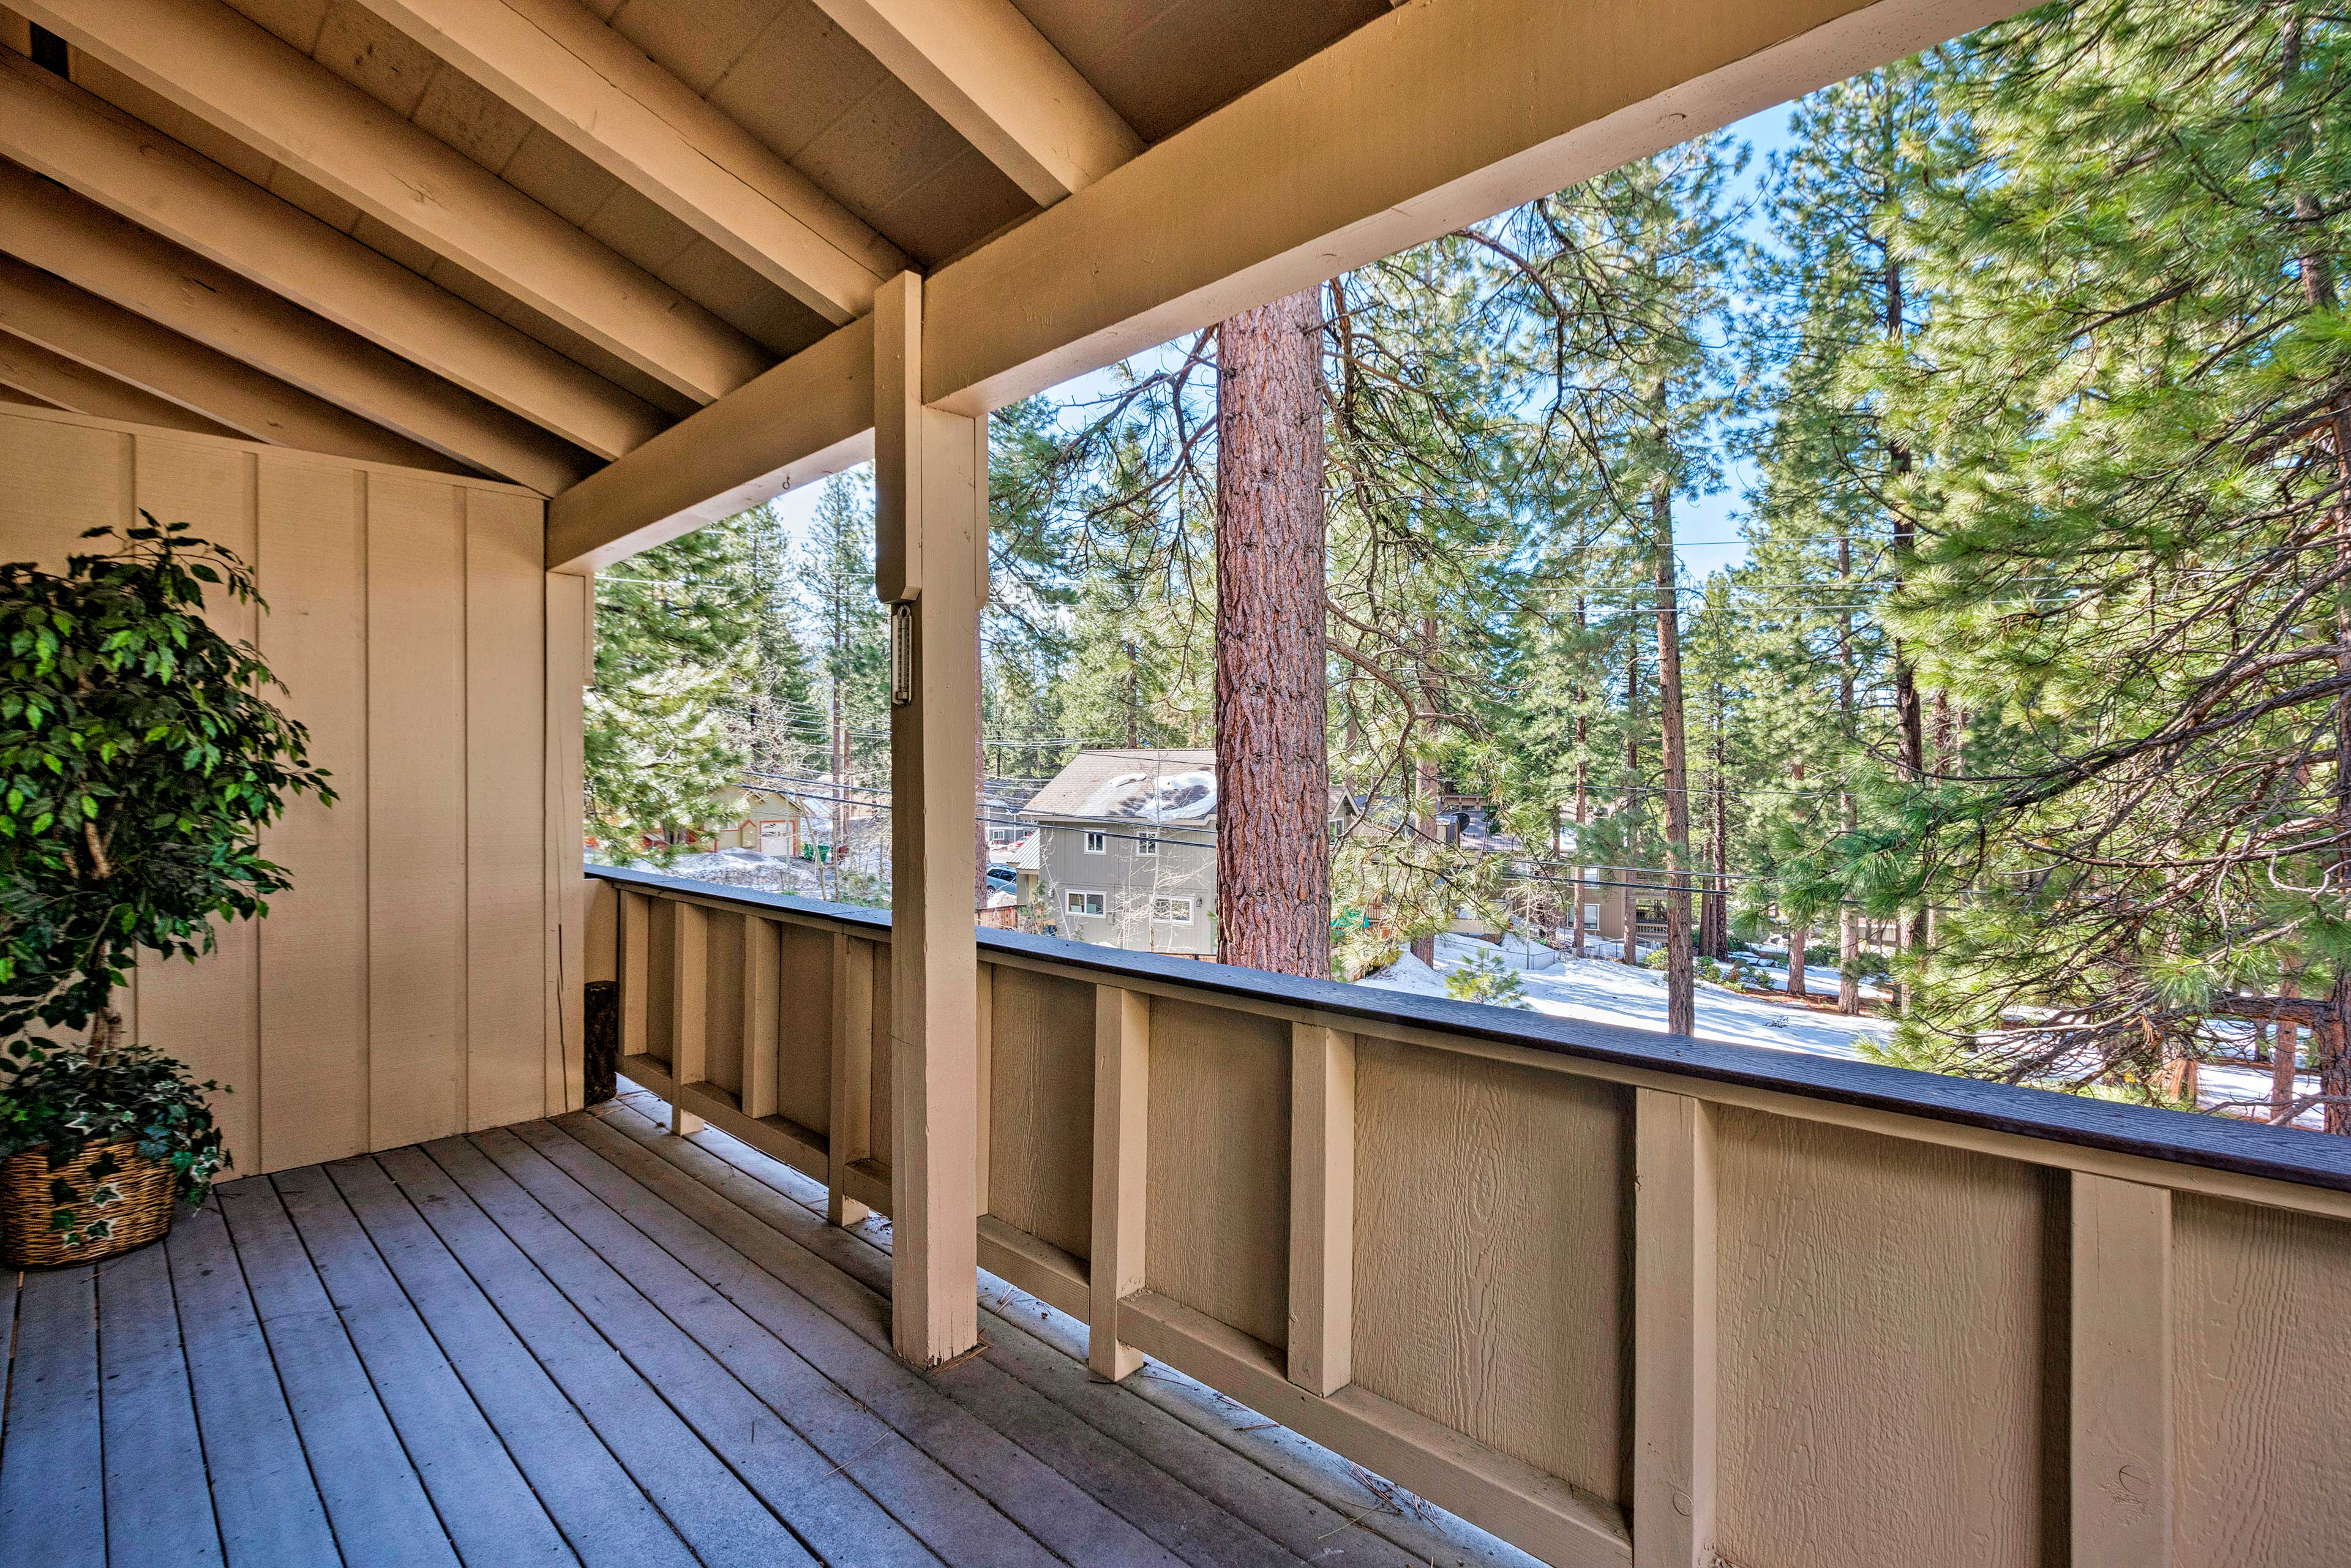 There are 3 bedrooms, a loft, 2.5 bathrooms, a spacious deck, and room for 12!